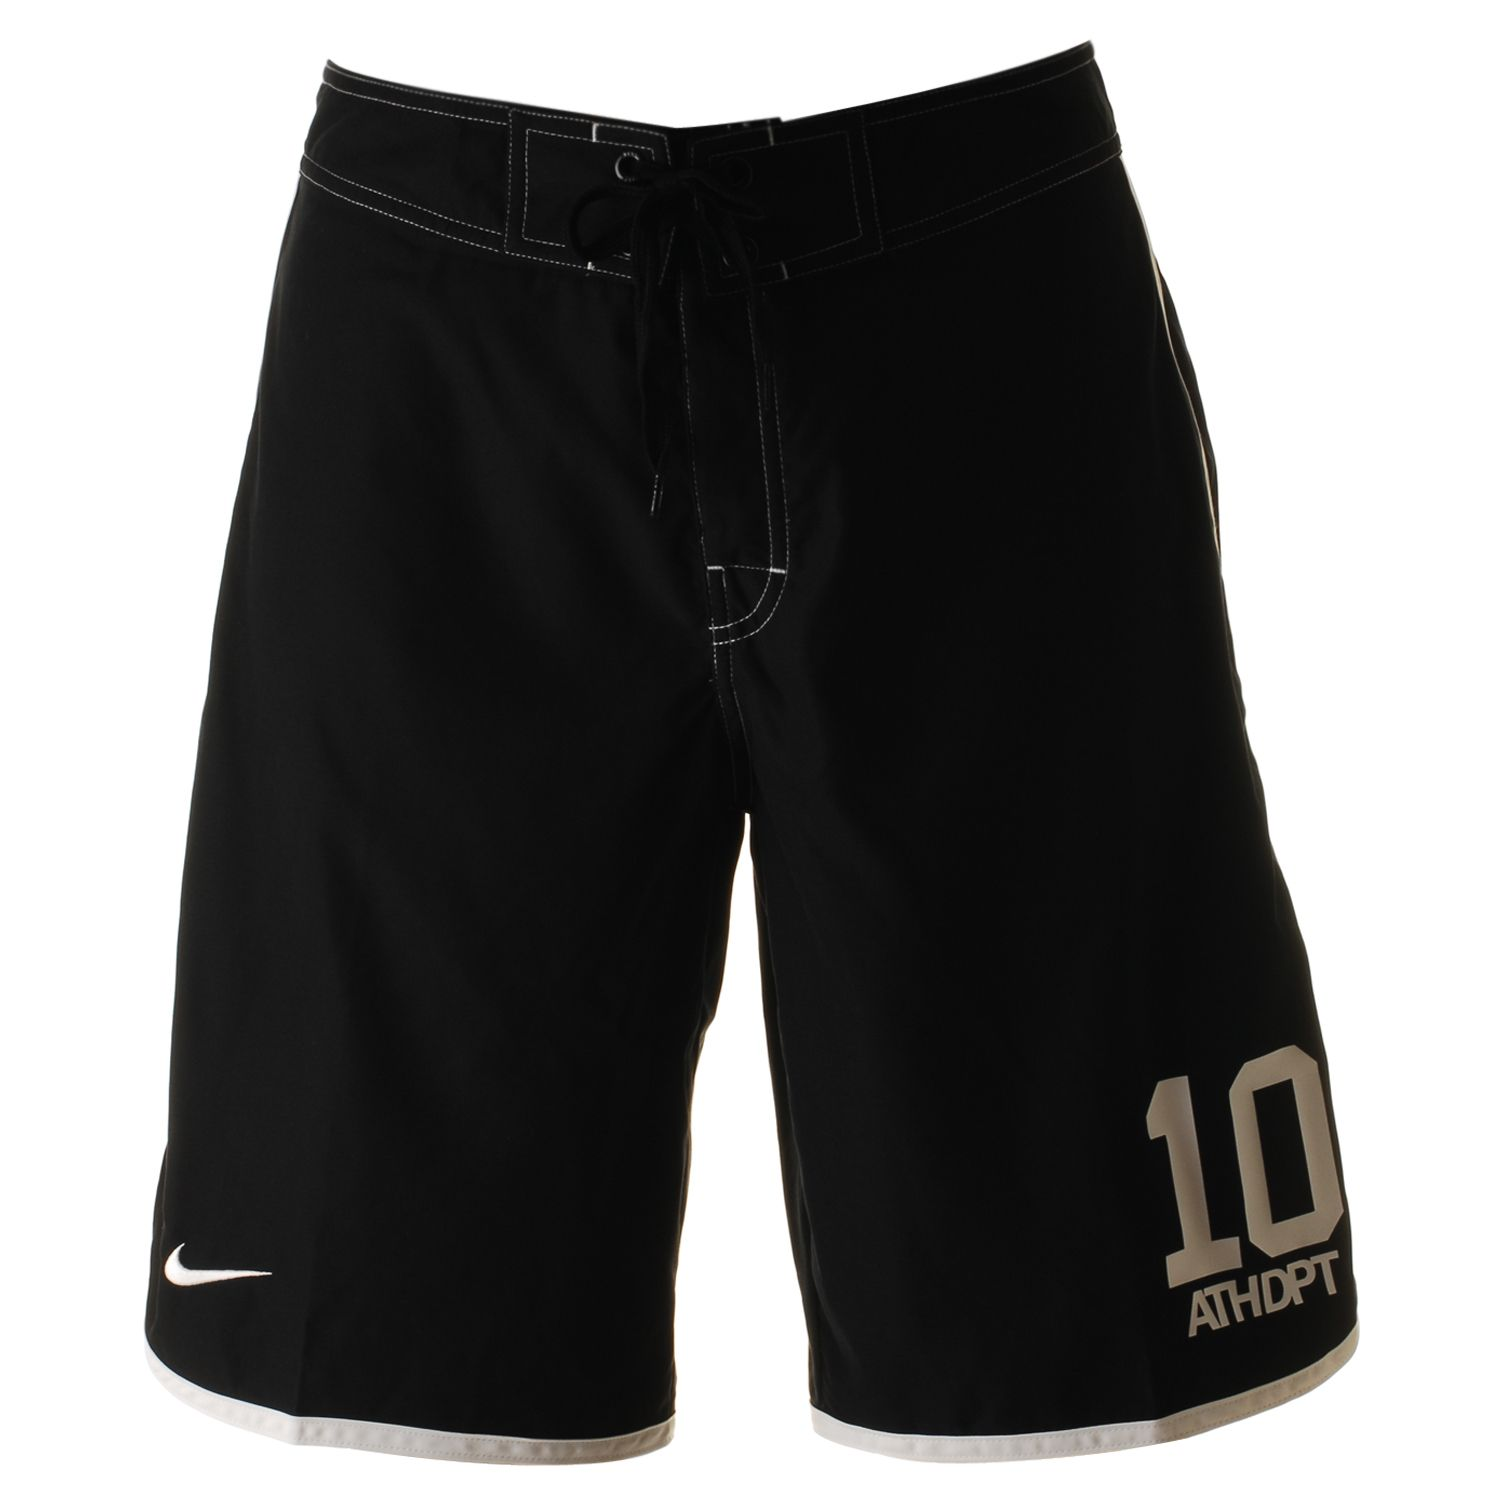 Nike AD Footy Board Shorts | eBay